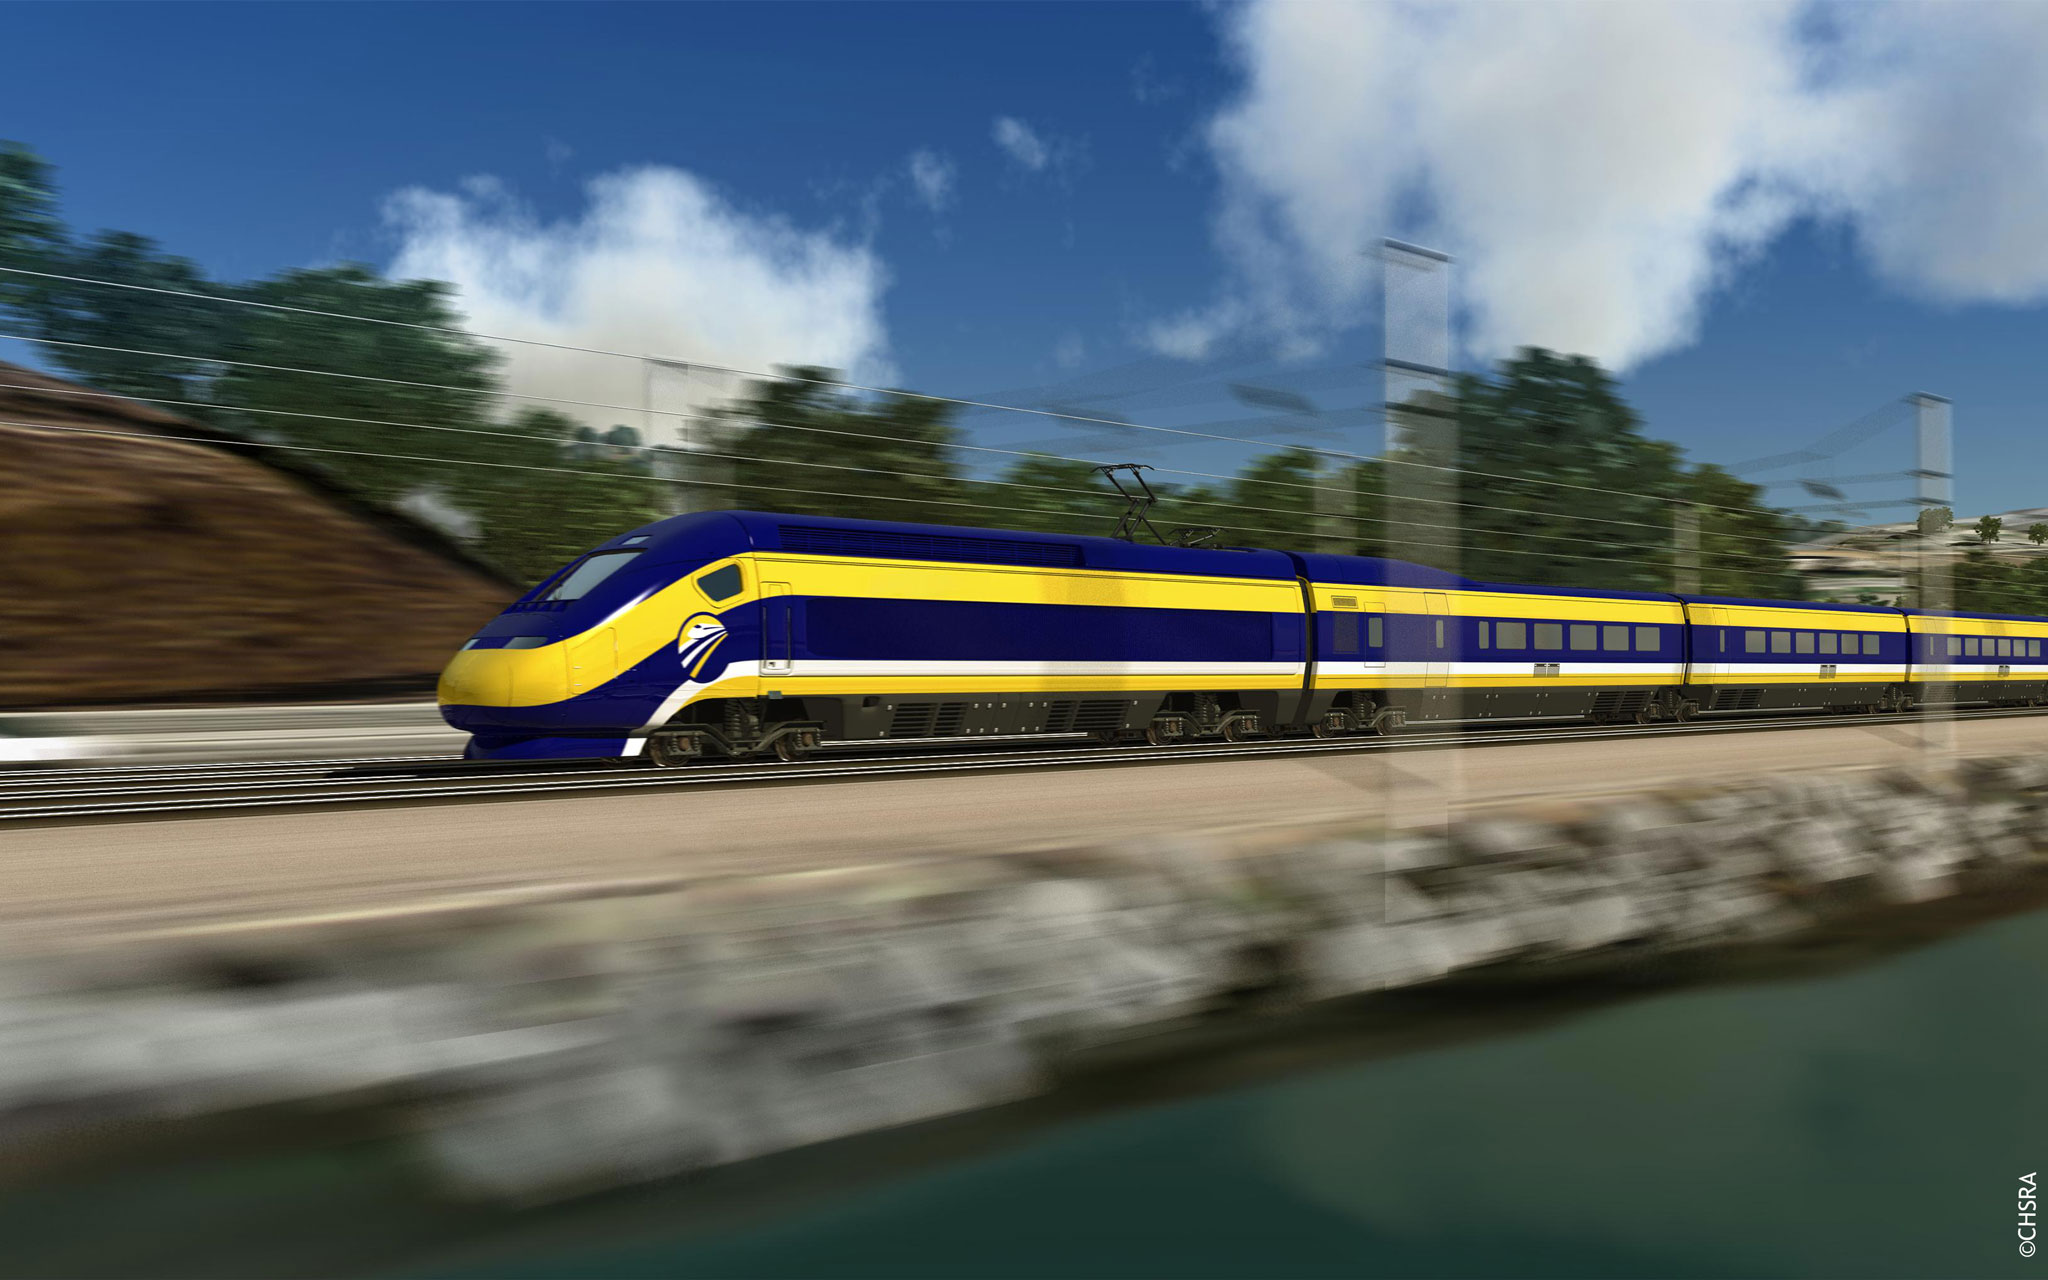 Contract for the California high-speed railway line